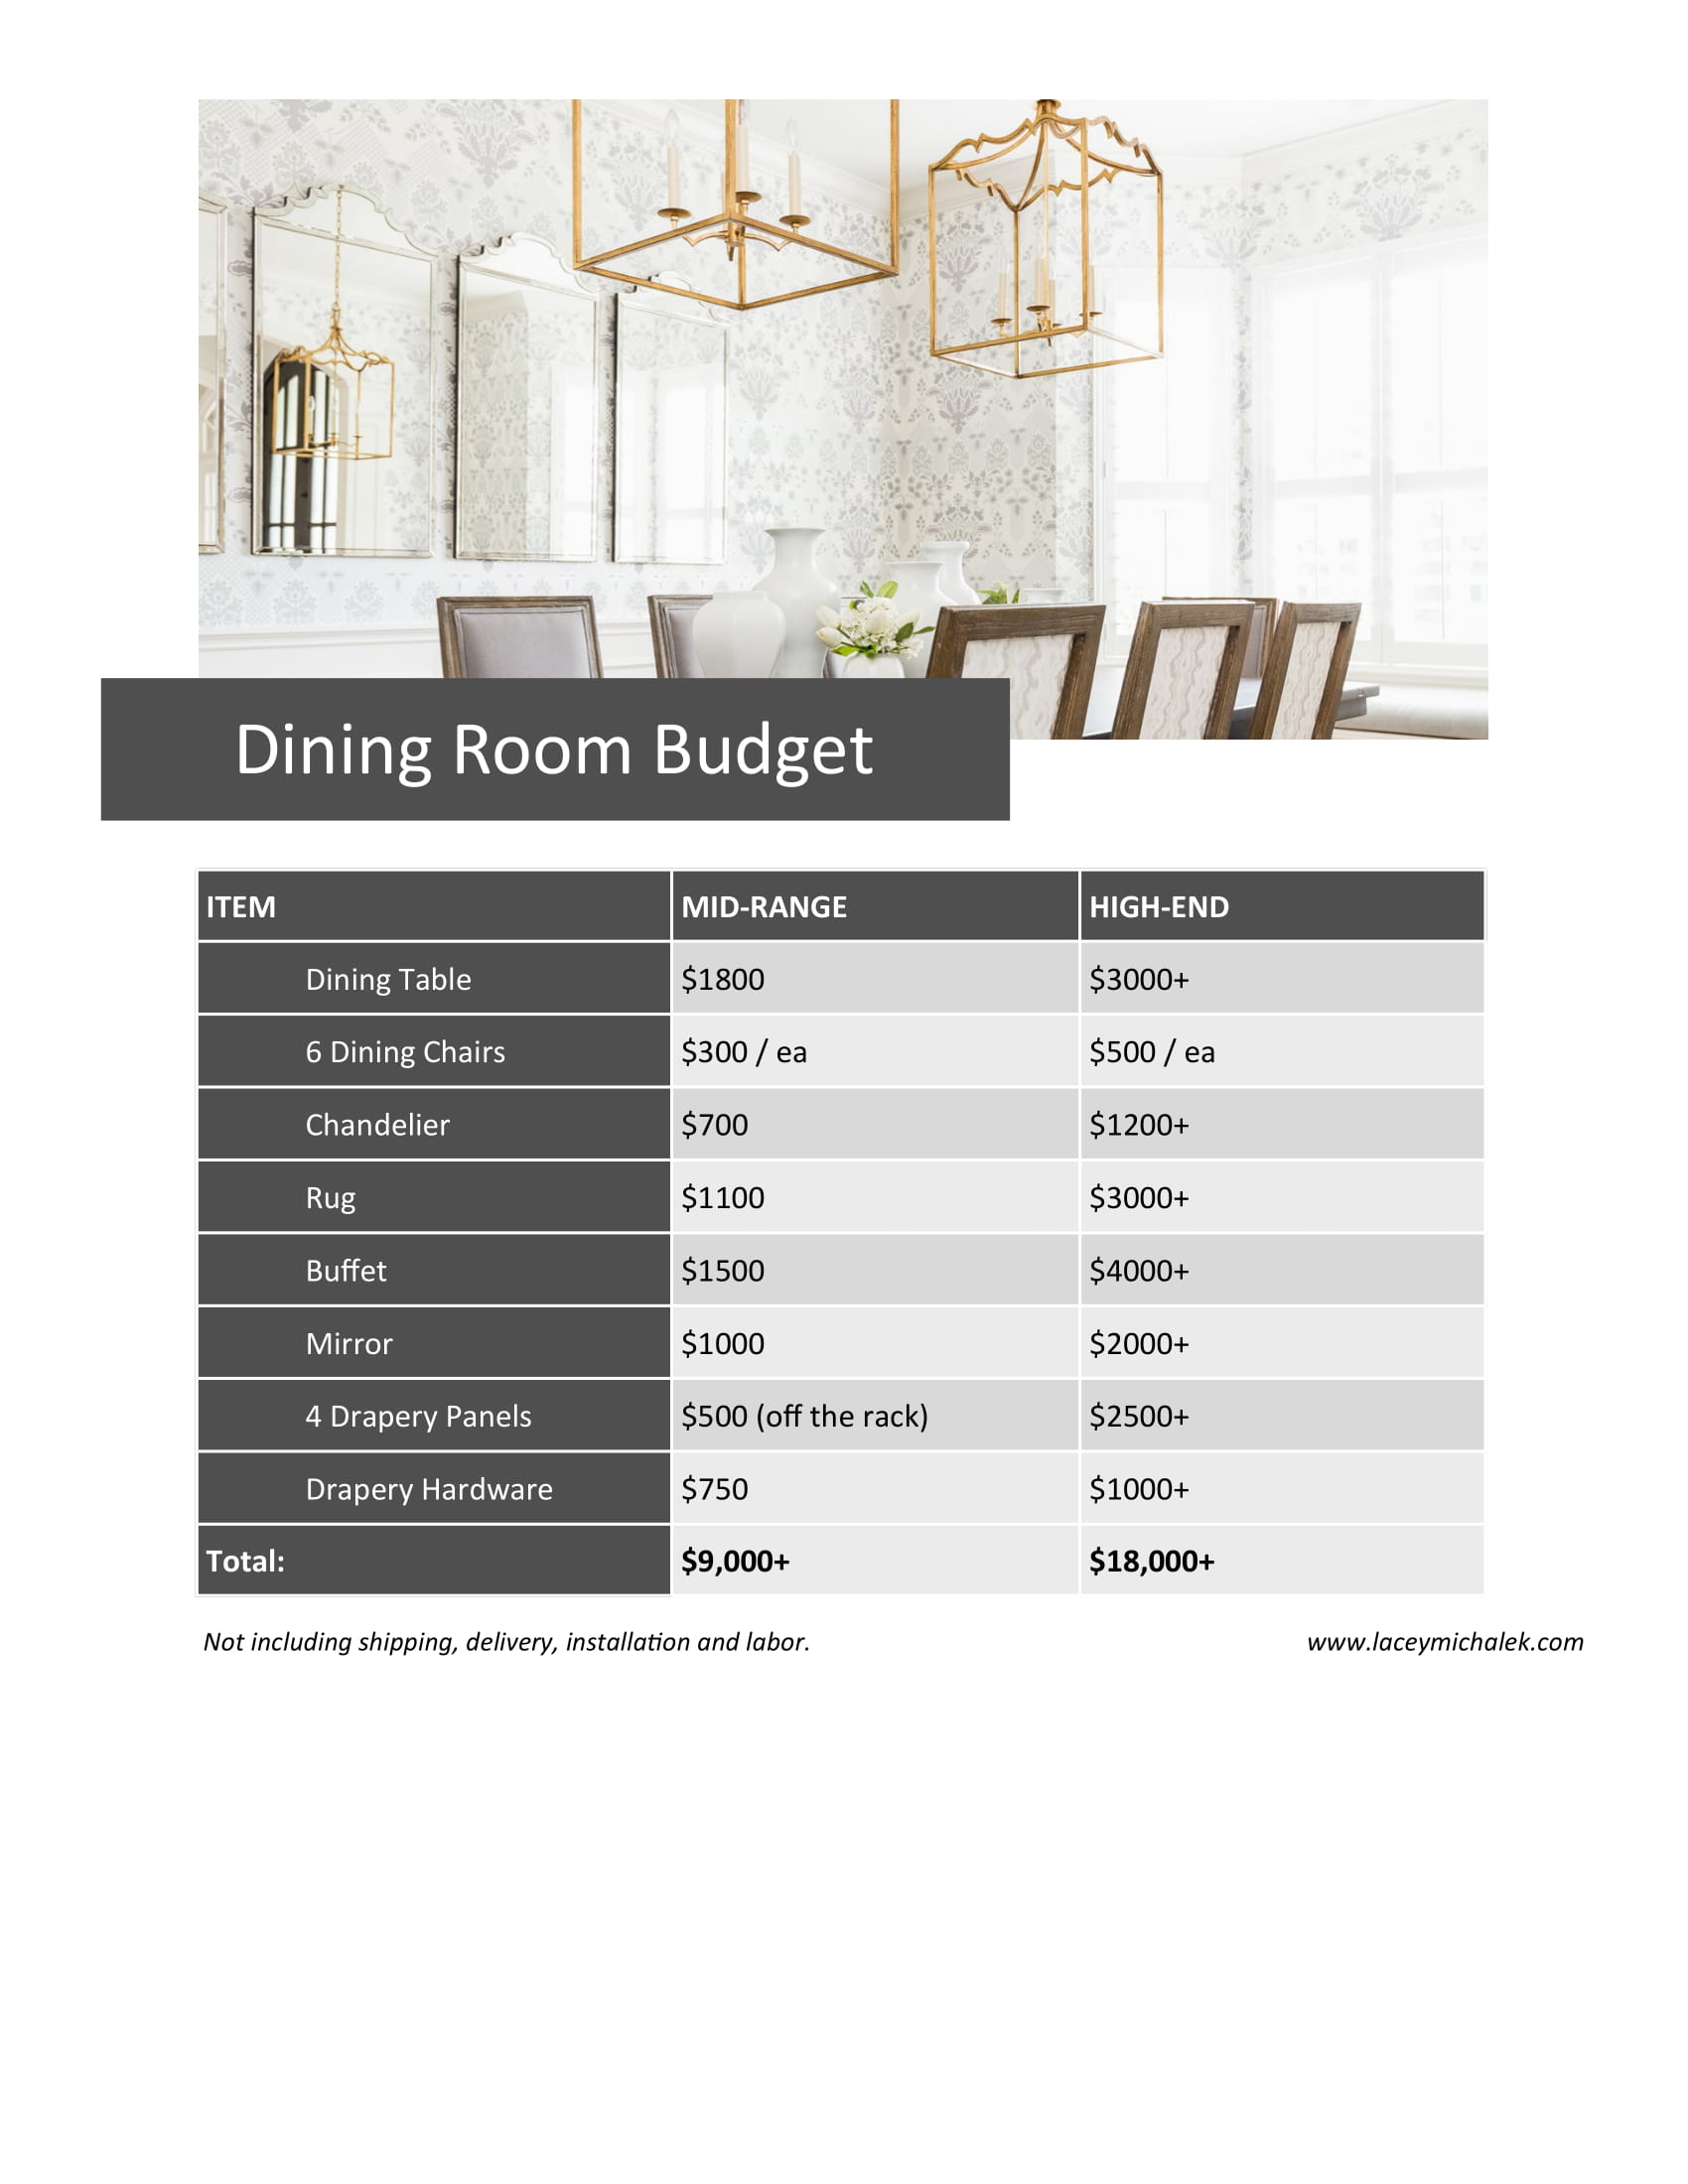 Budget Breakdown Cost of Dining Room